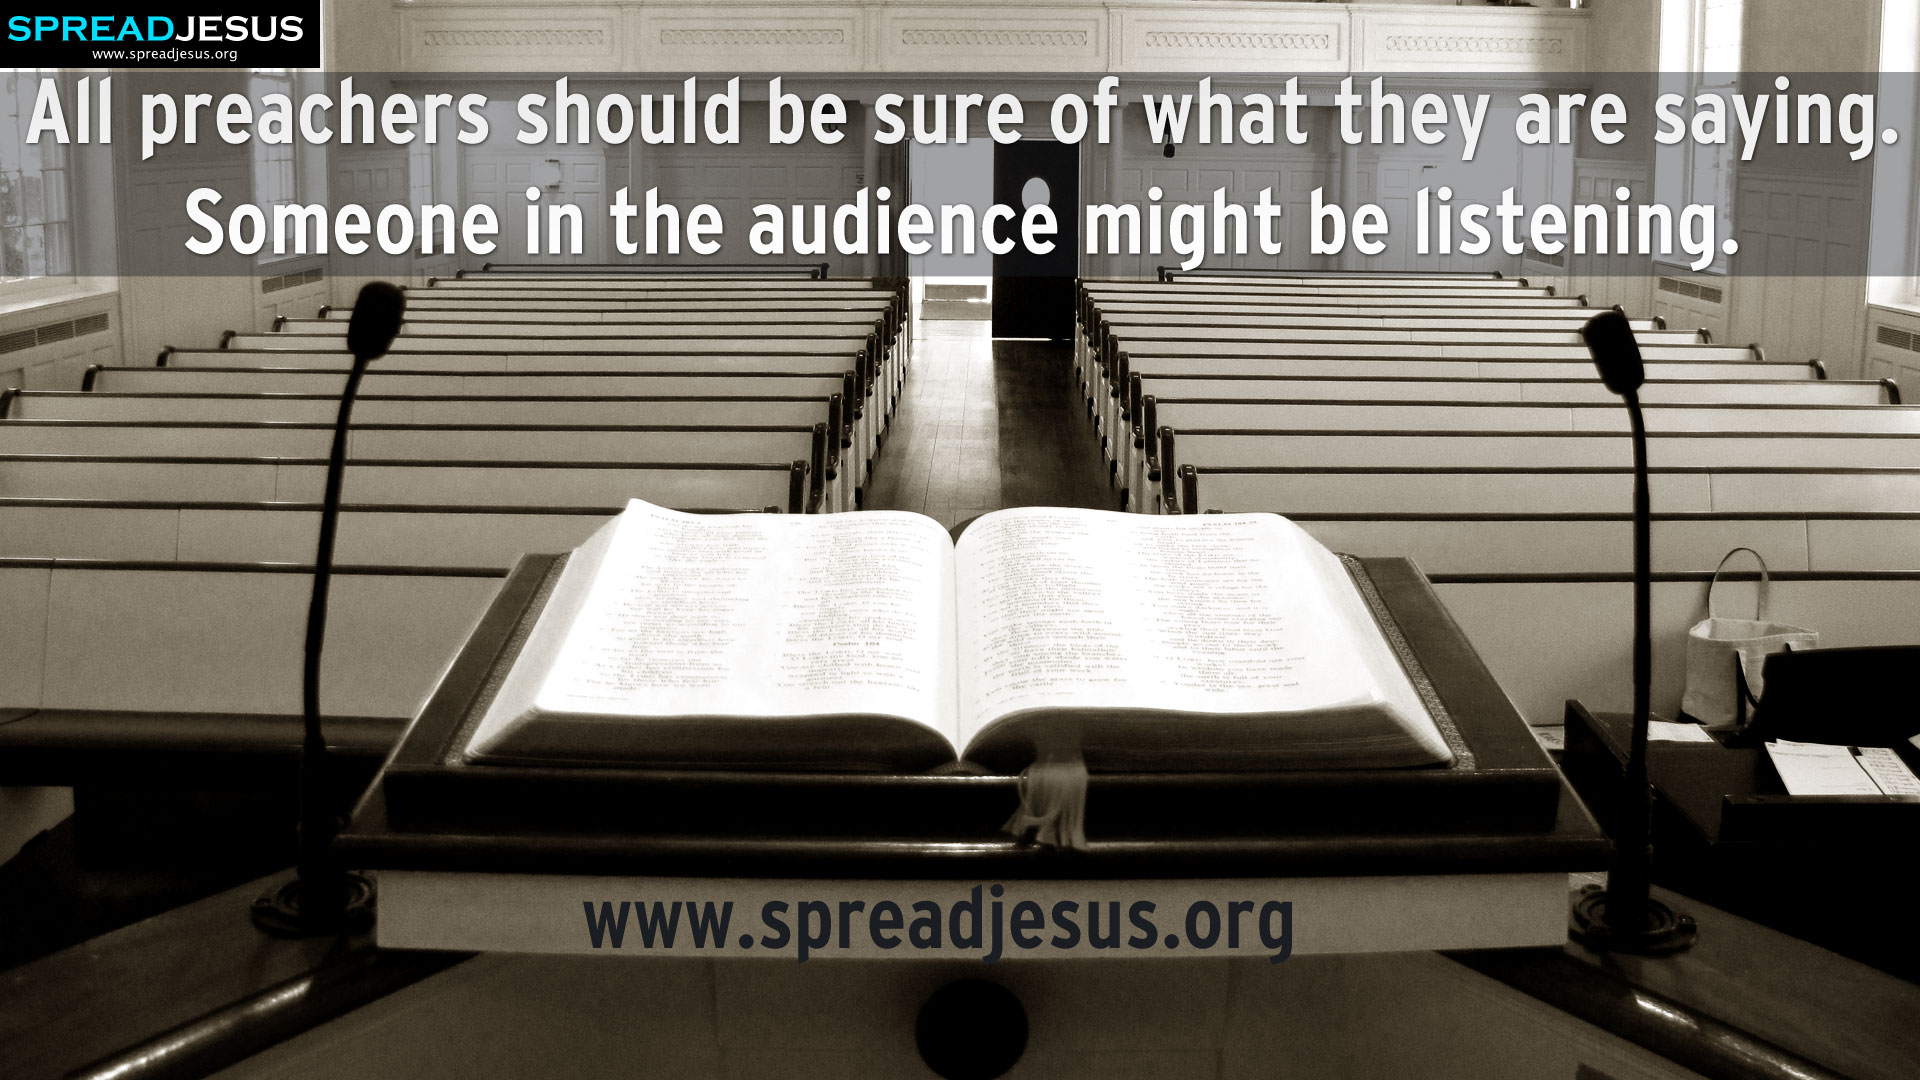 All preachers should be sure of what they are saying